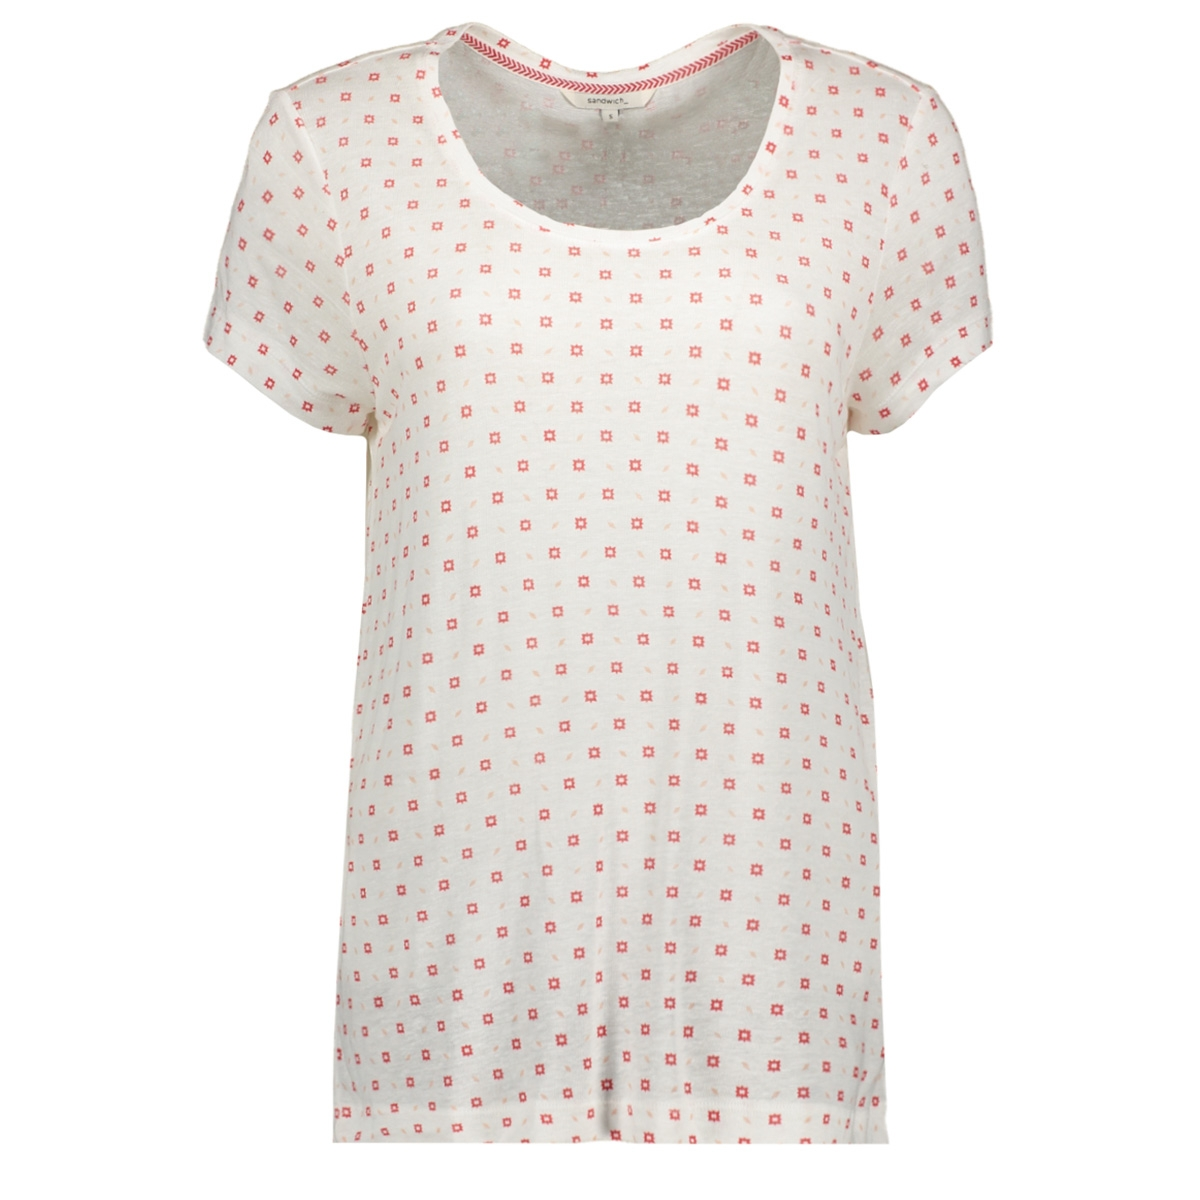 t shirt met all over sterren print 21101682 sandwich t-shirt 10058